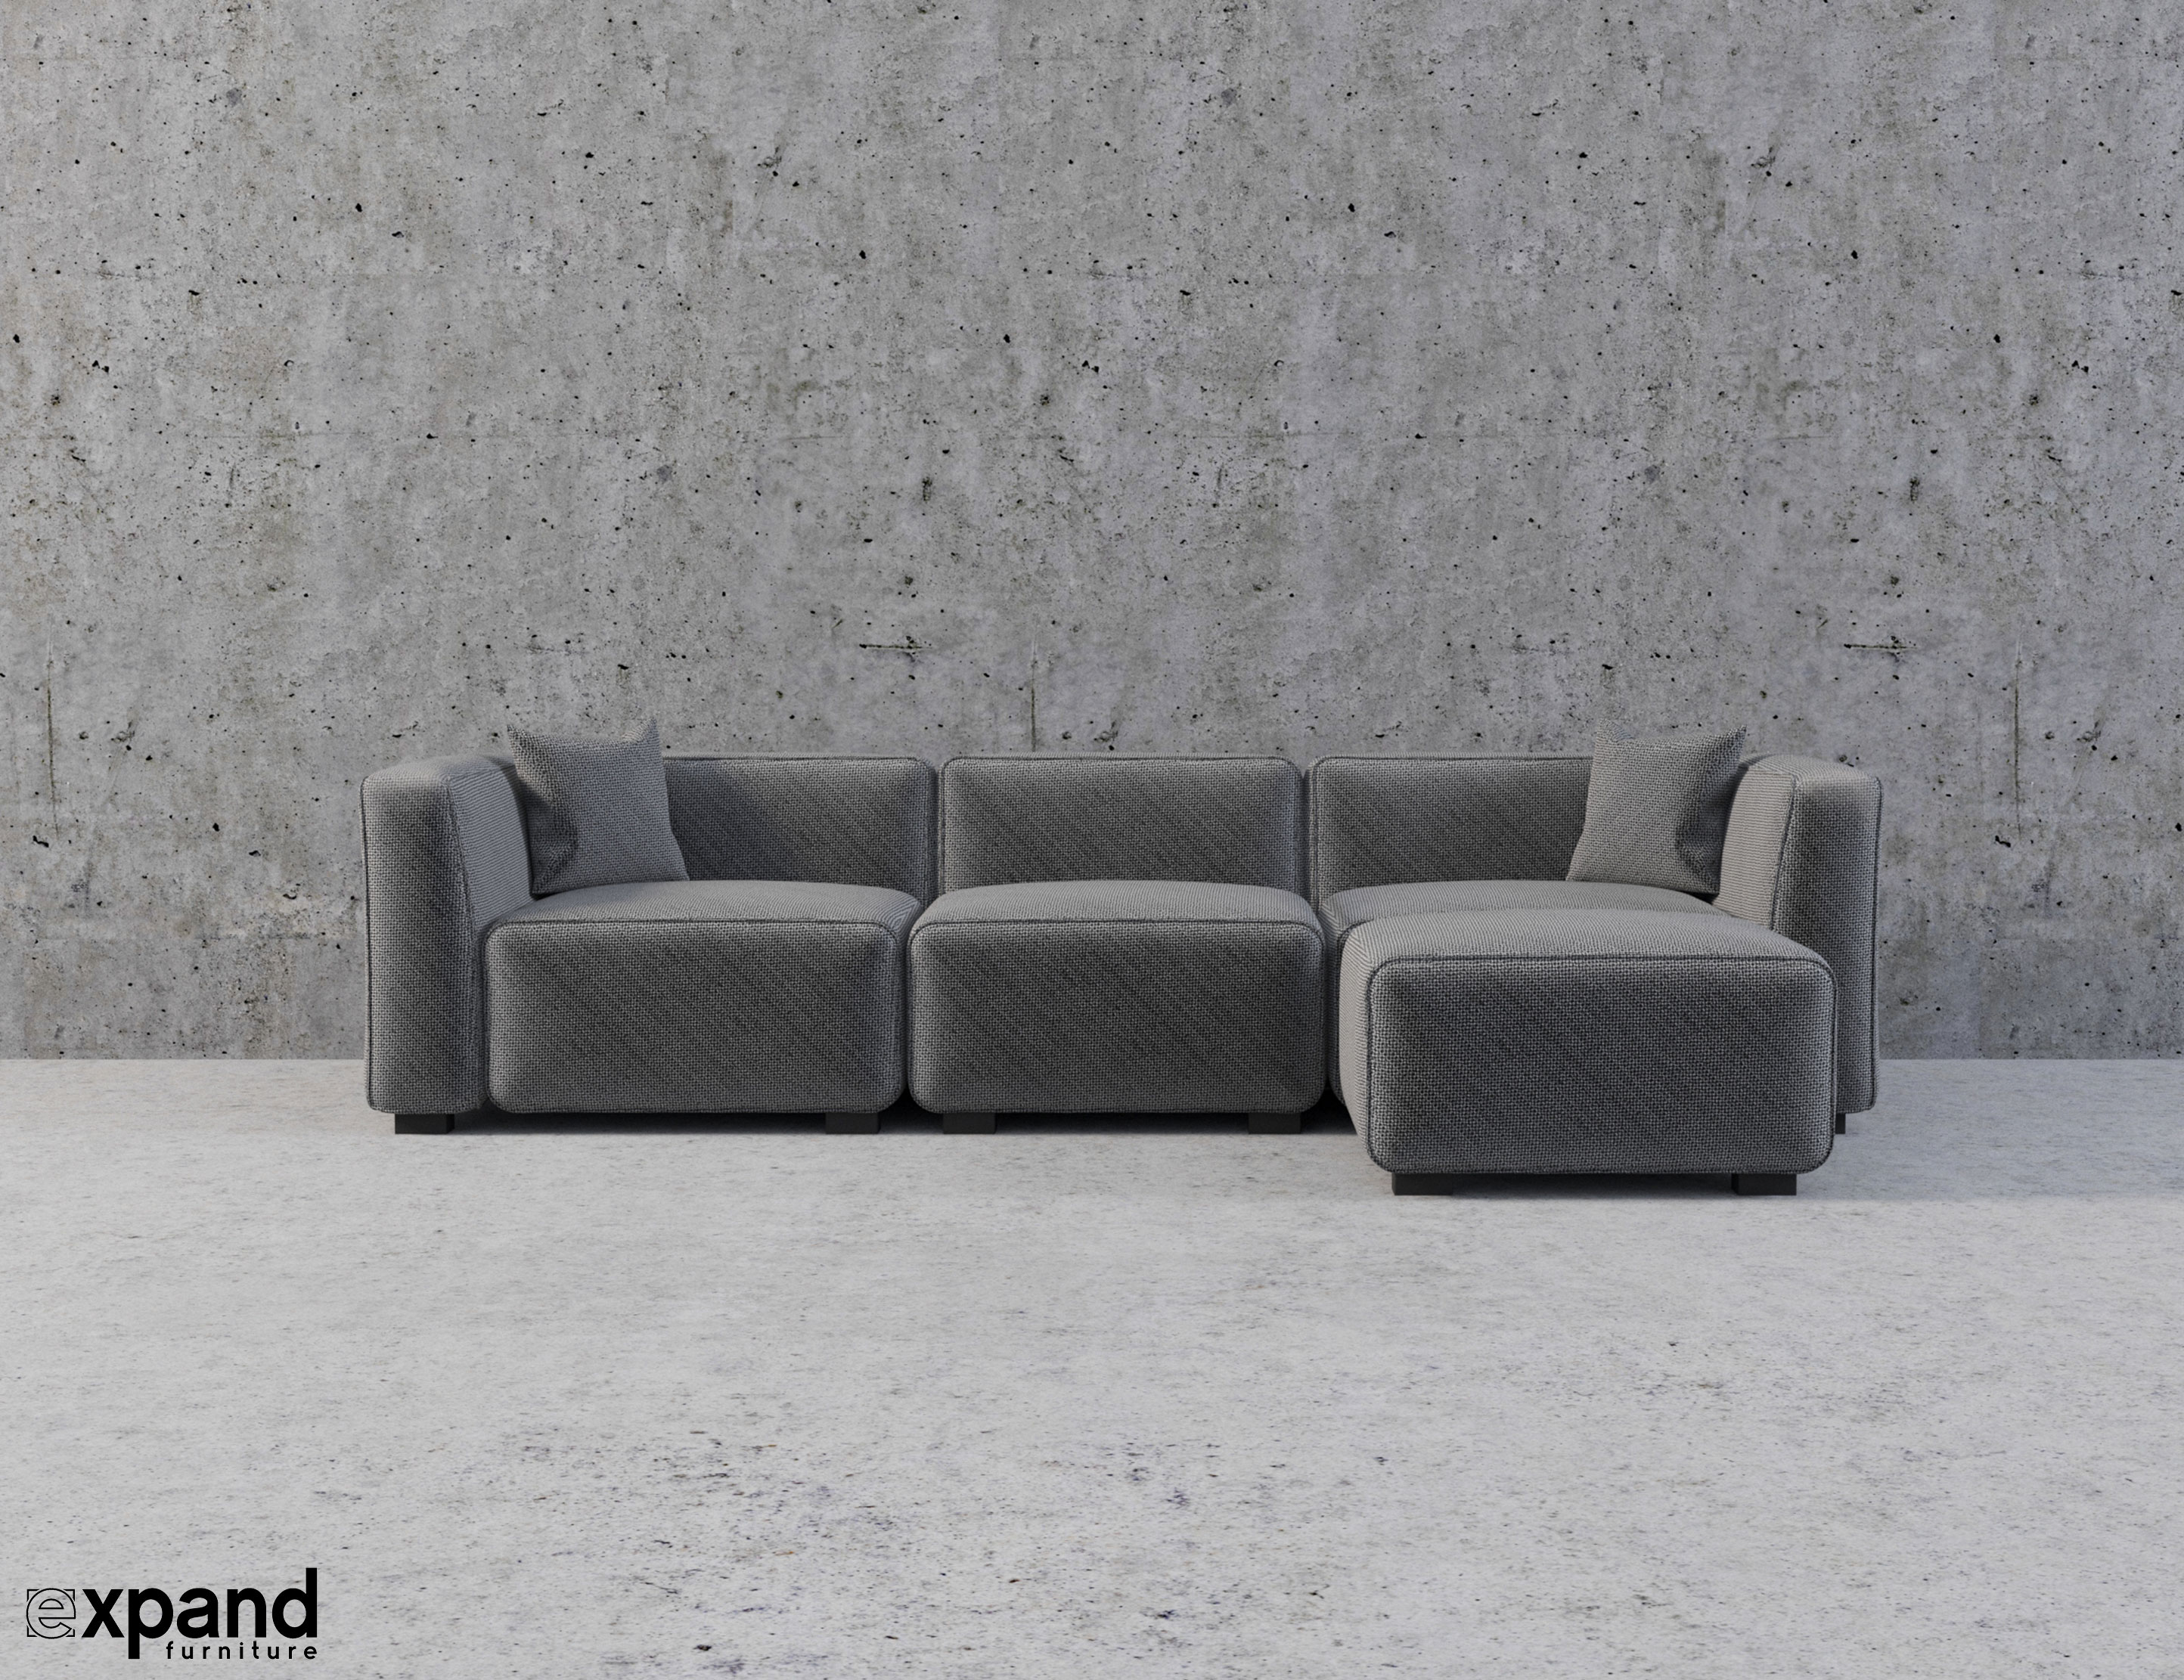 Soft-Cube: Modern Modular Sofa Set | Expand Furniture - Folding ...